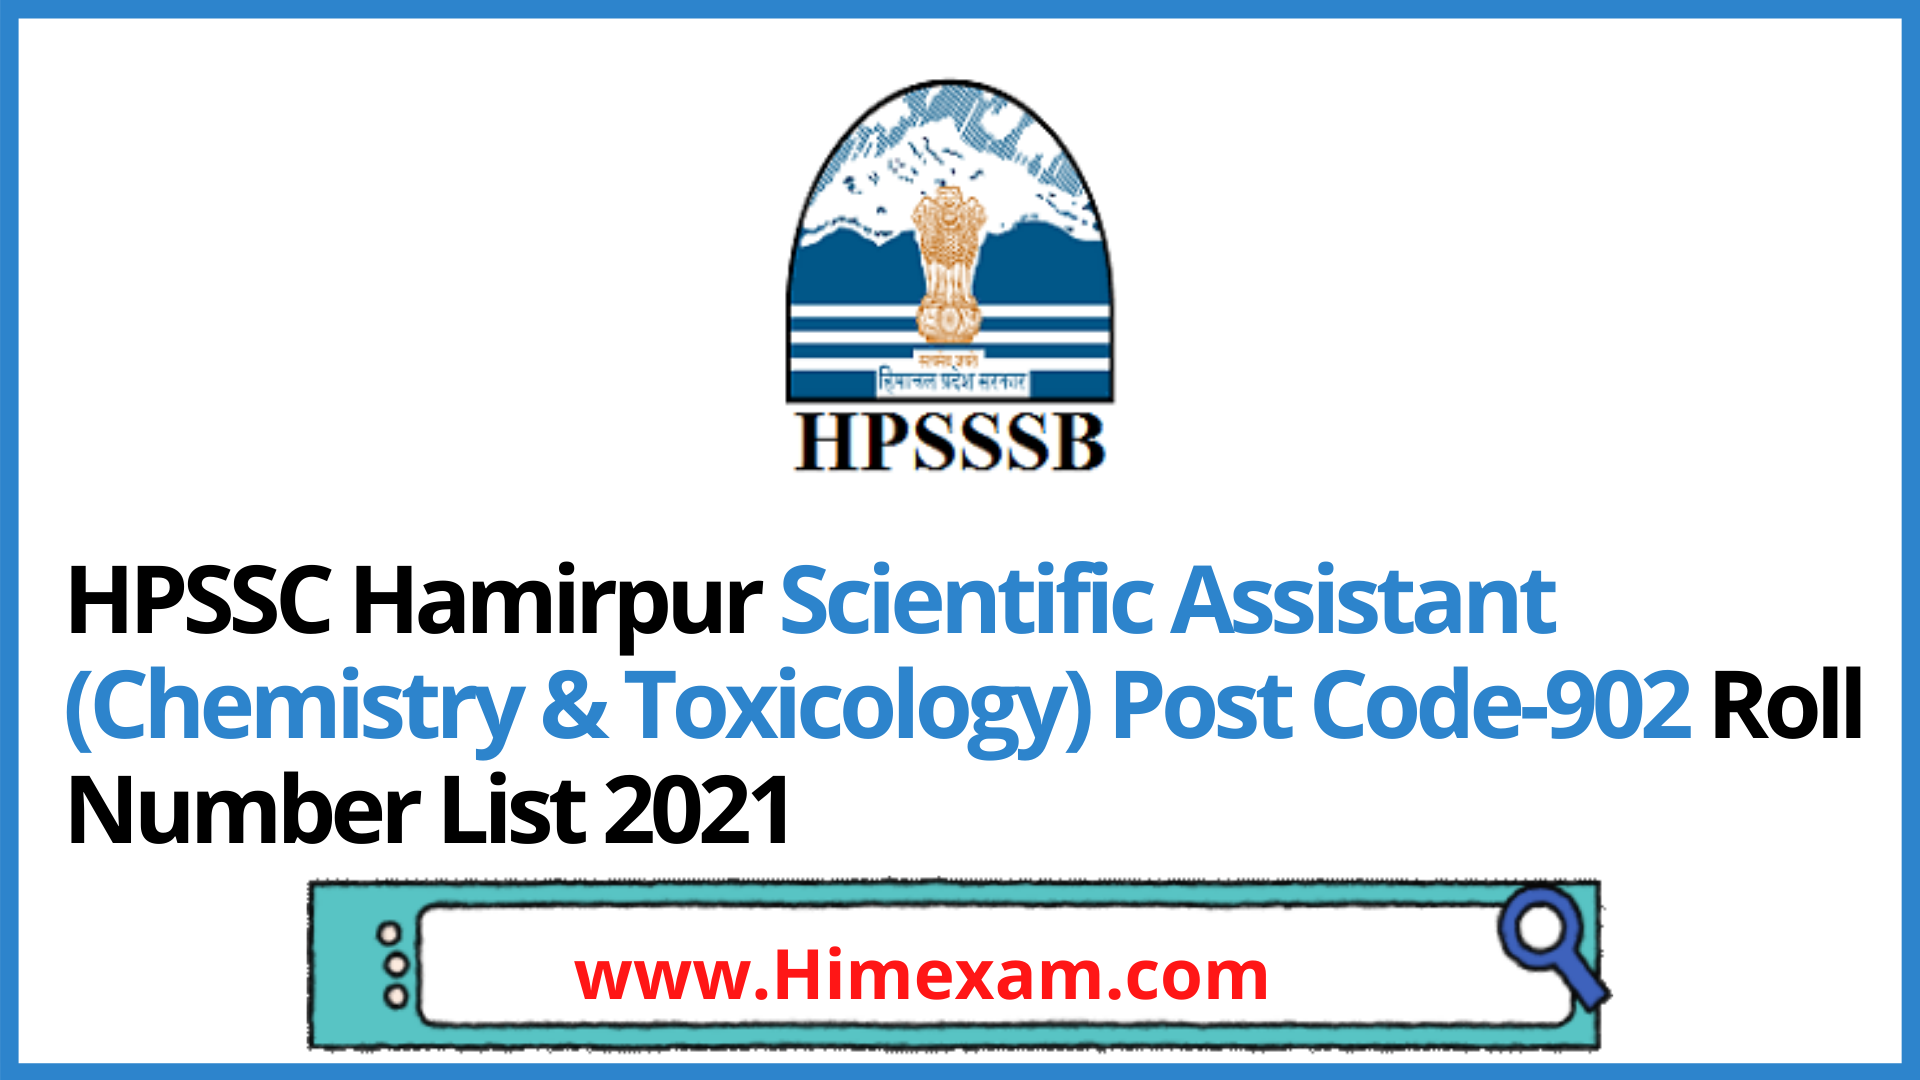 HPSSC Hamirpur Scientific Assistant (Chemistry & Toxicology) Post Code-902 Roll Number List 2021